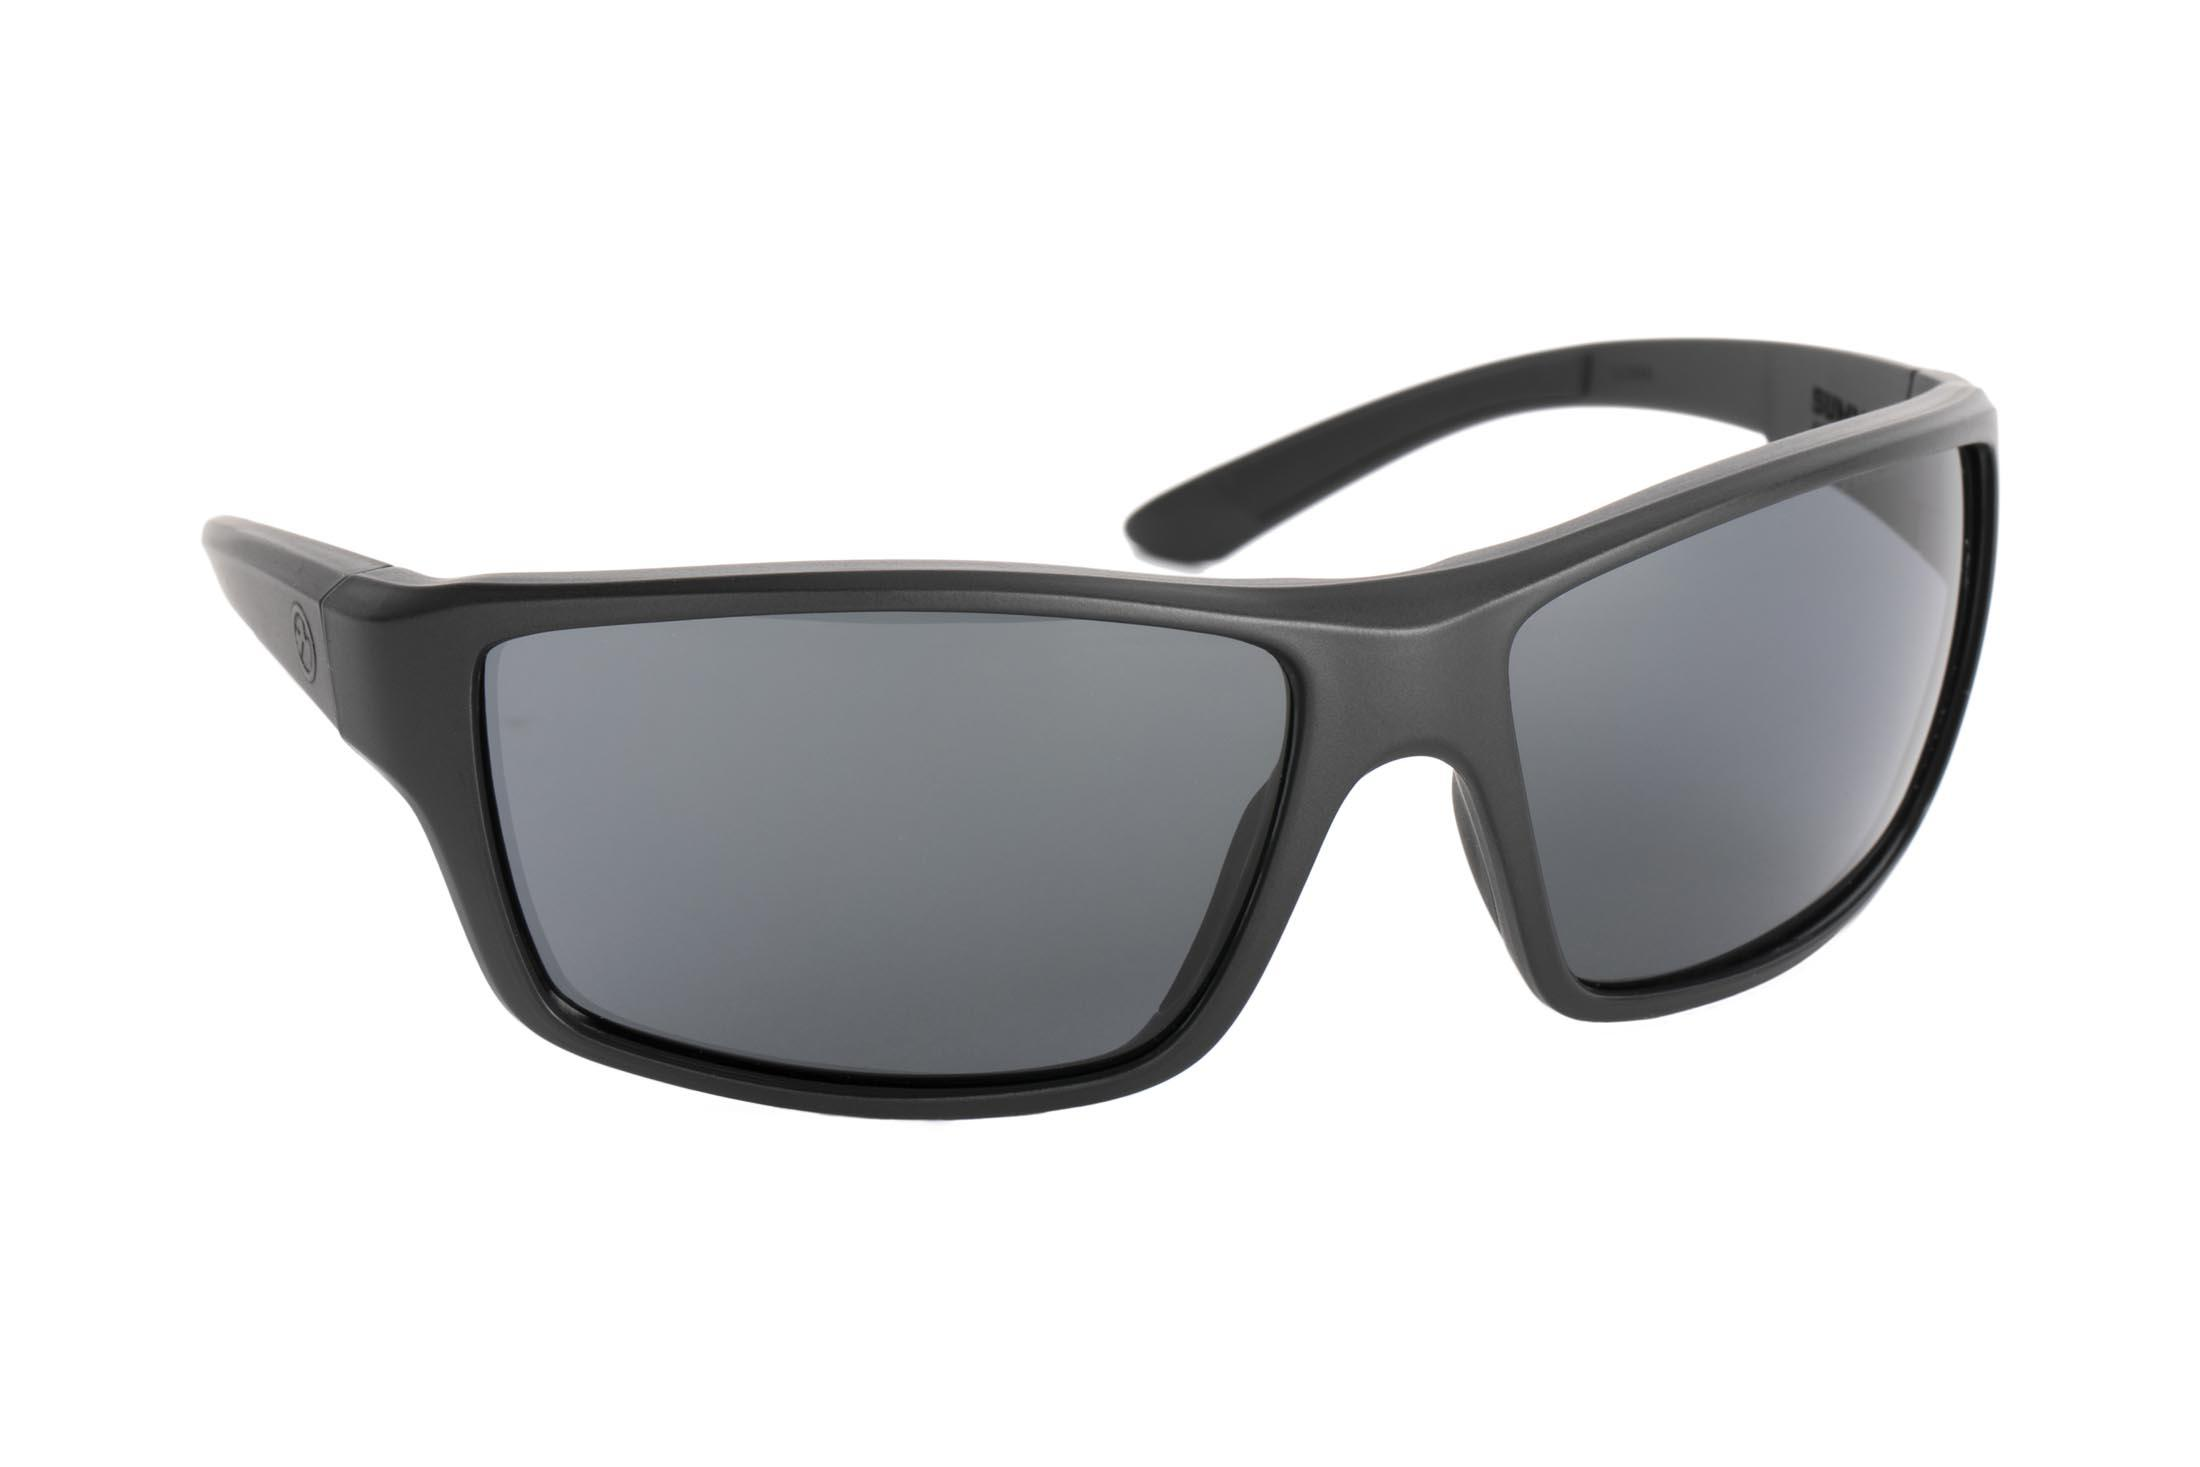 df84285e93 ... Magpul Summit ballistic sunglasses with black frame and polarized gray  lenses are ideal for medium- ...